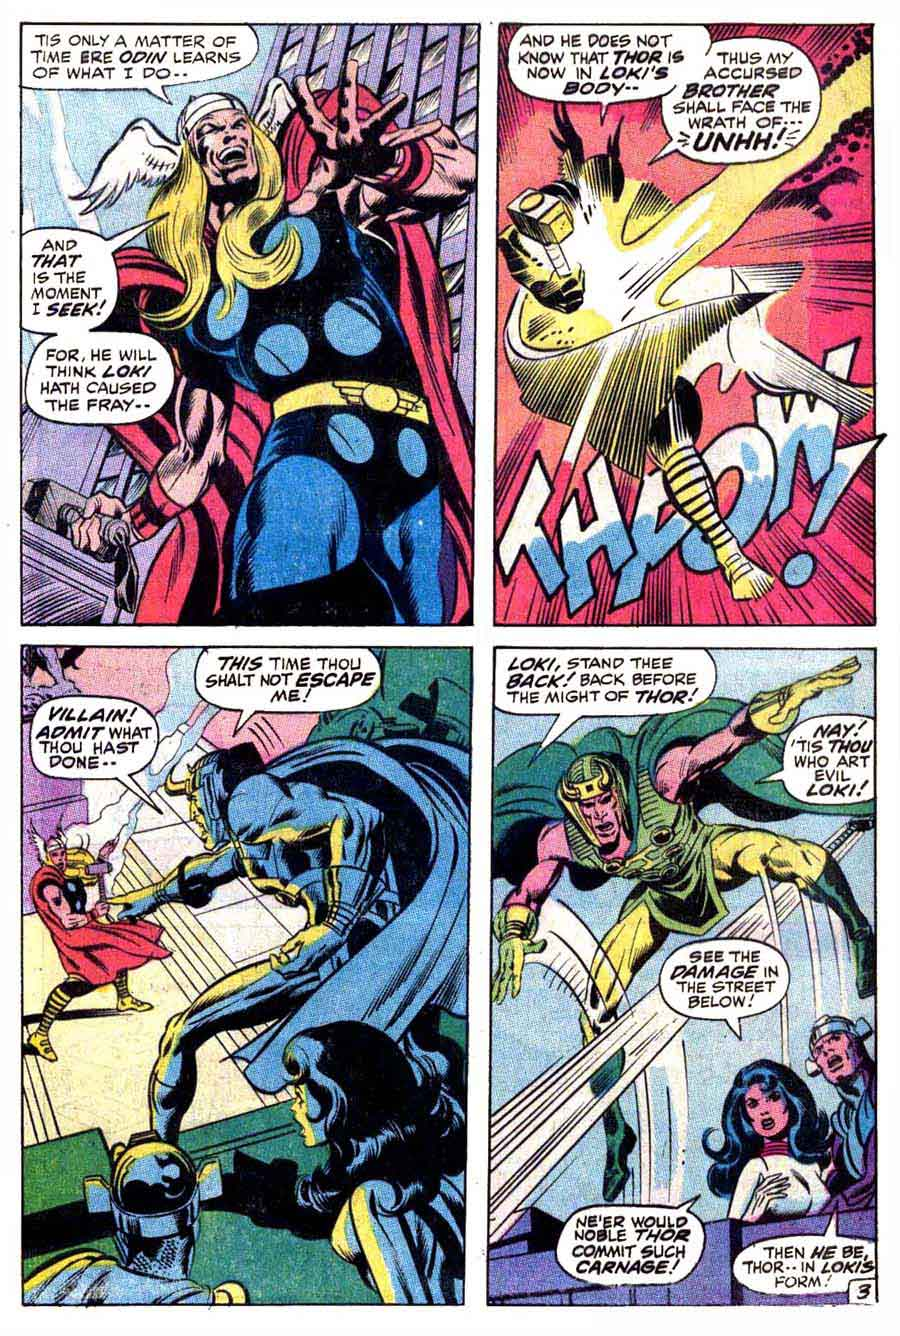 Thor v1 #180 marvel comic book page art by Neal Adams